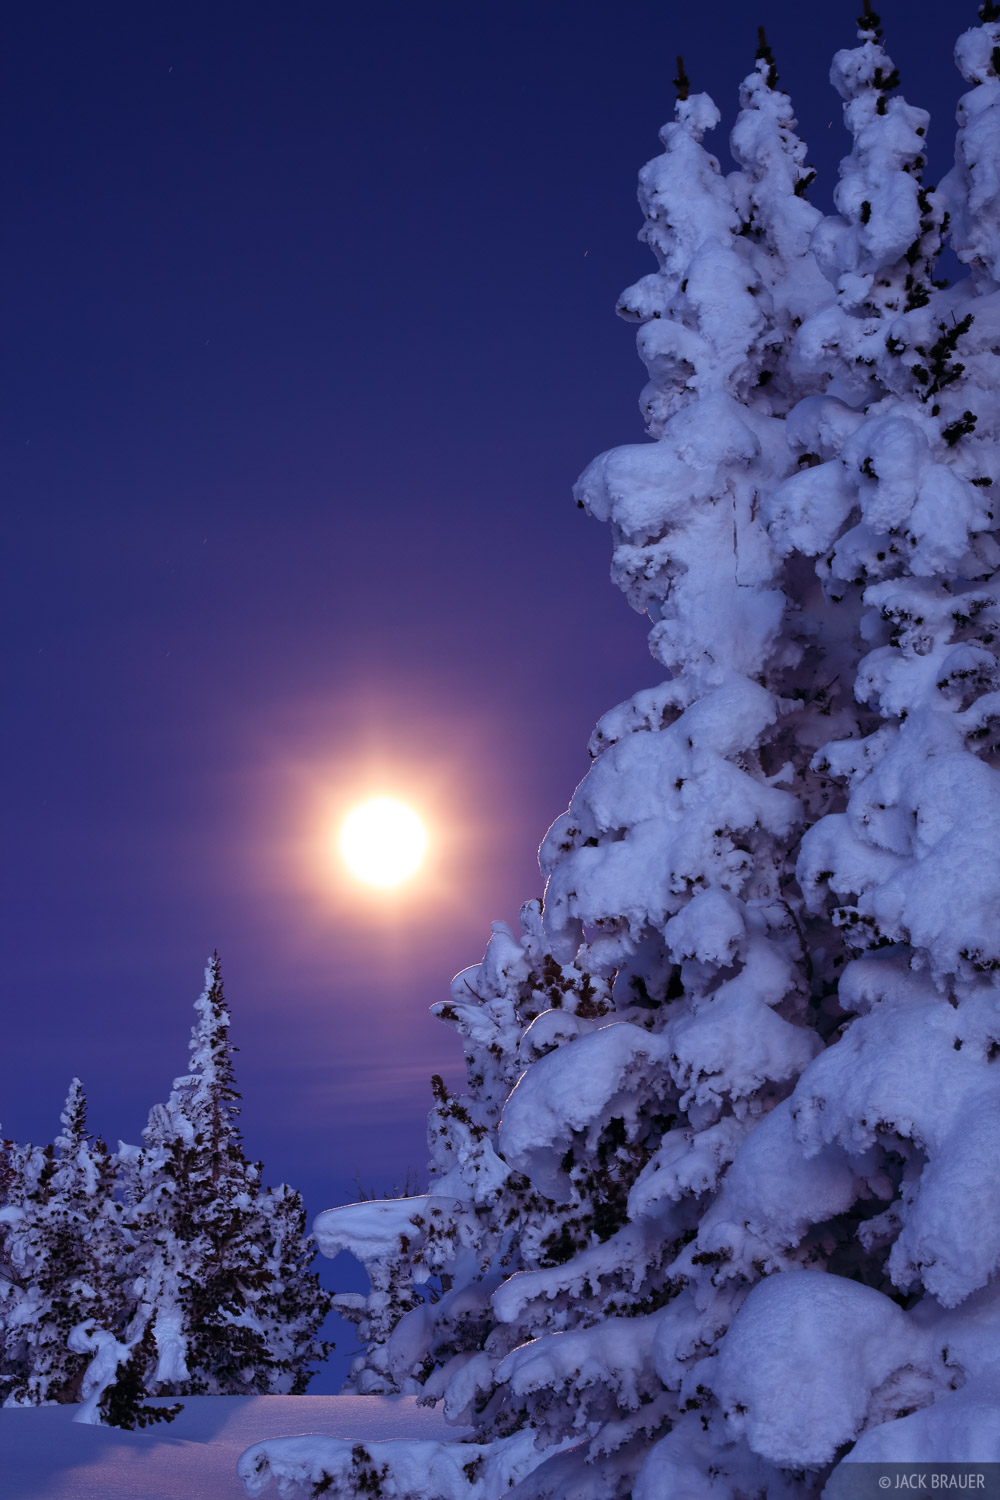 Snow smothered trees and a full moon.